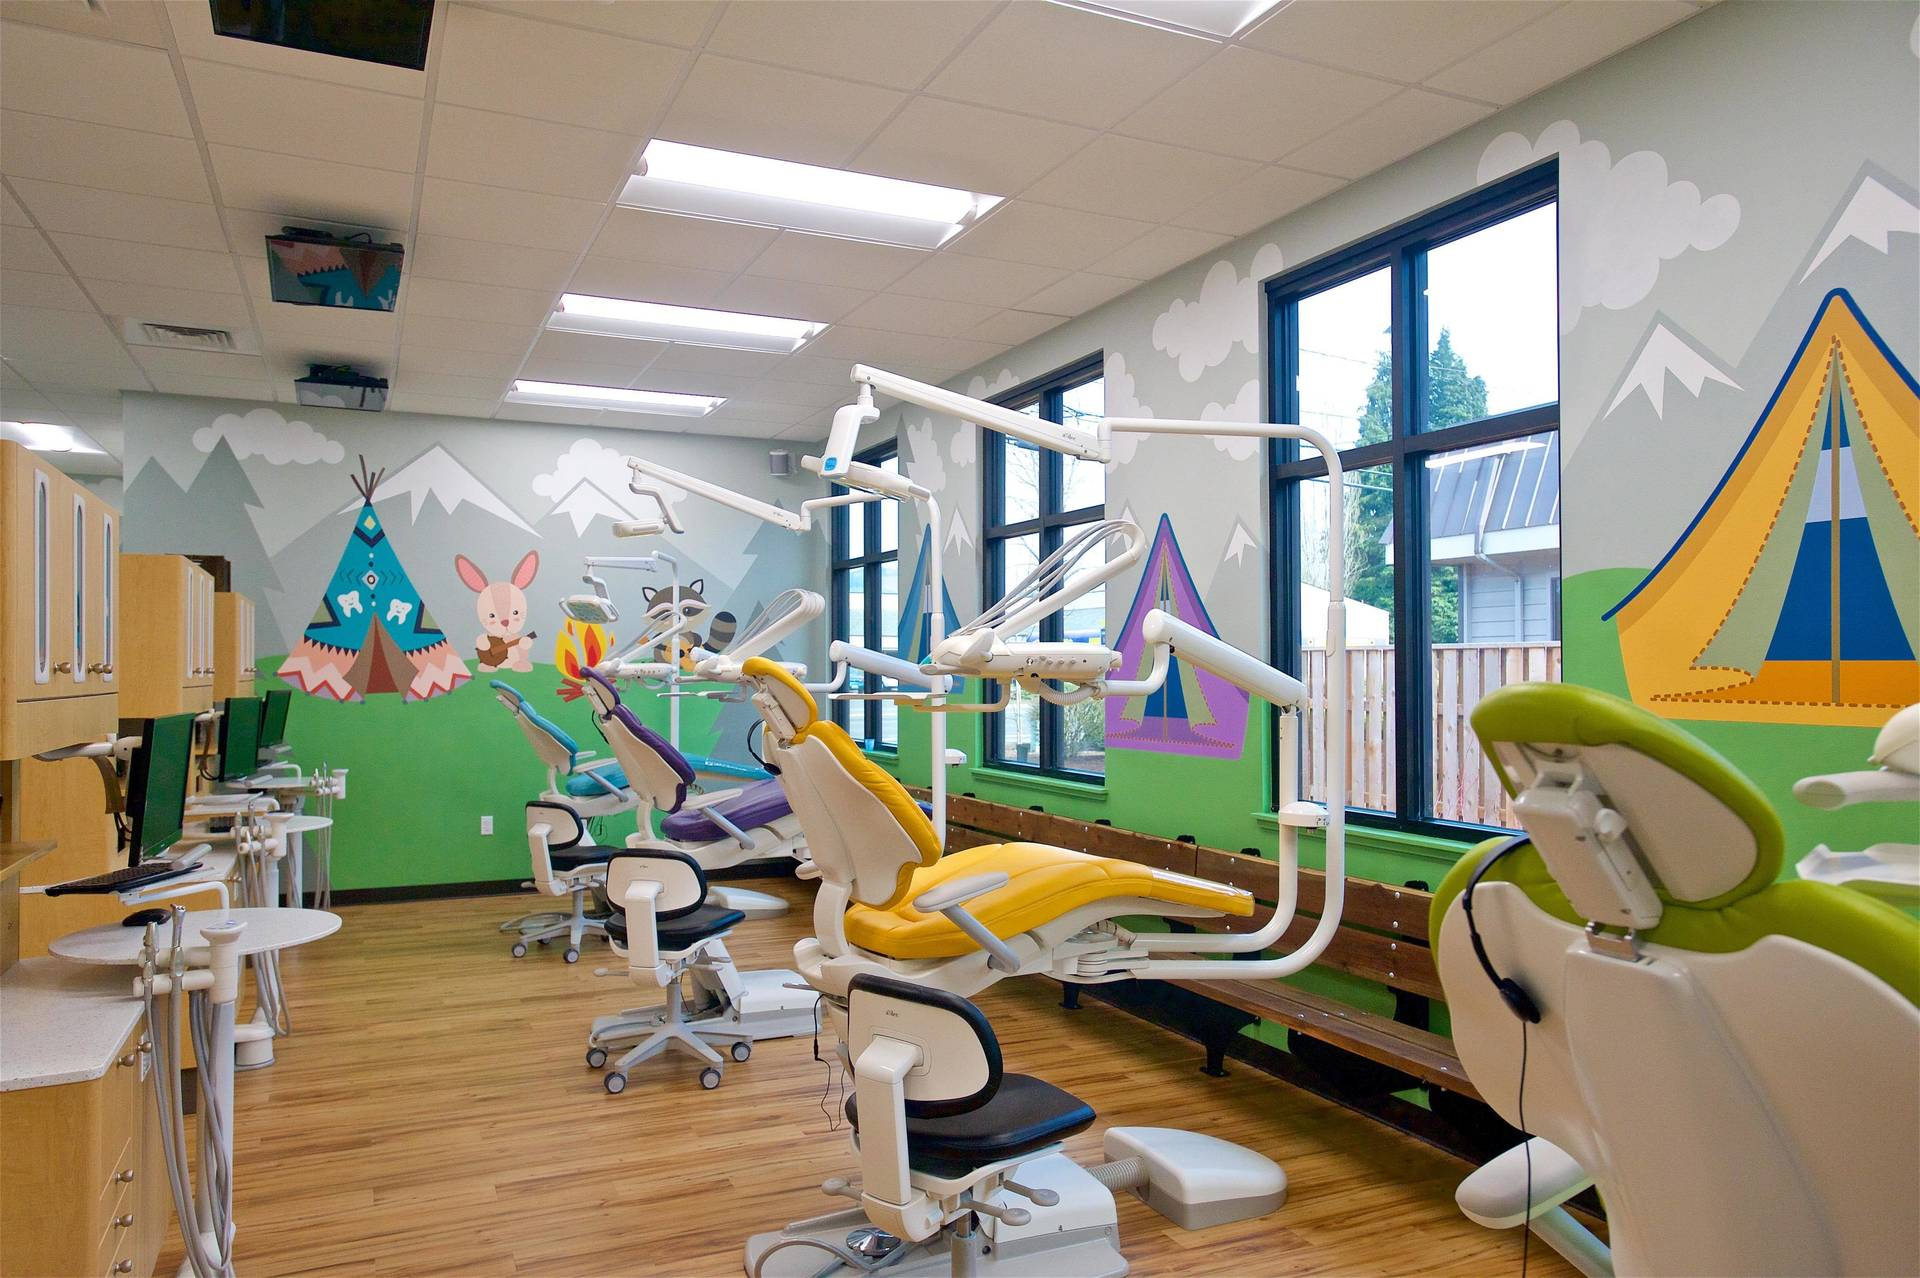 Murals Your Way's dental wallpaper murals are an easy way to create an inviting atmosphere for patients of all ages.